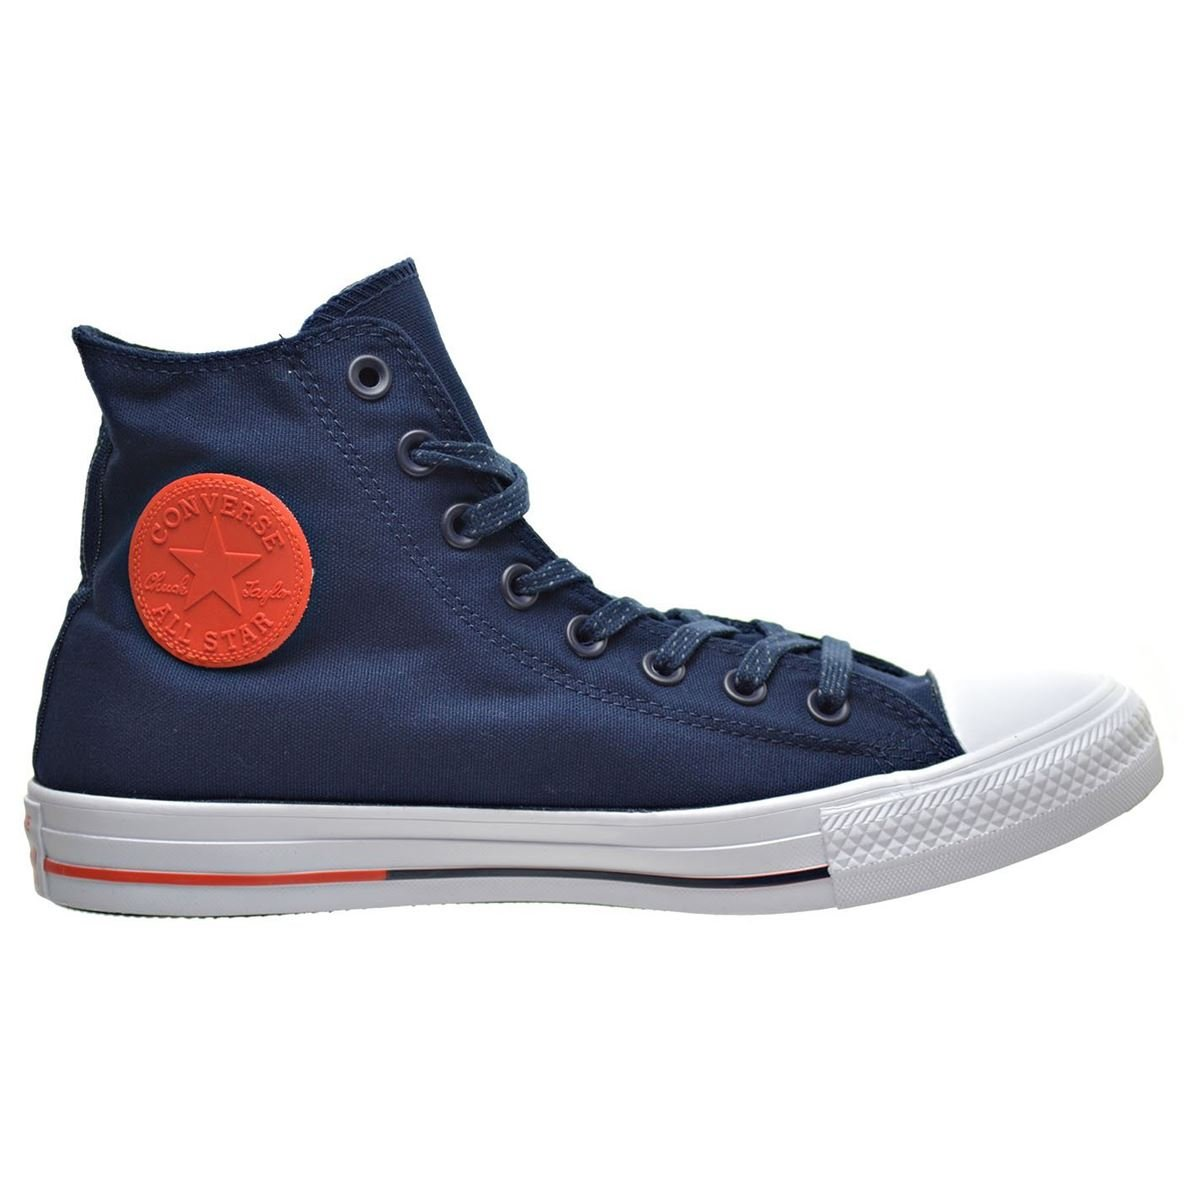 Converse Chuck Taylor All Star Hi Counter Climate Obsidian Womens Trainers 39 EU|Obsidian